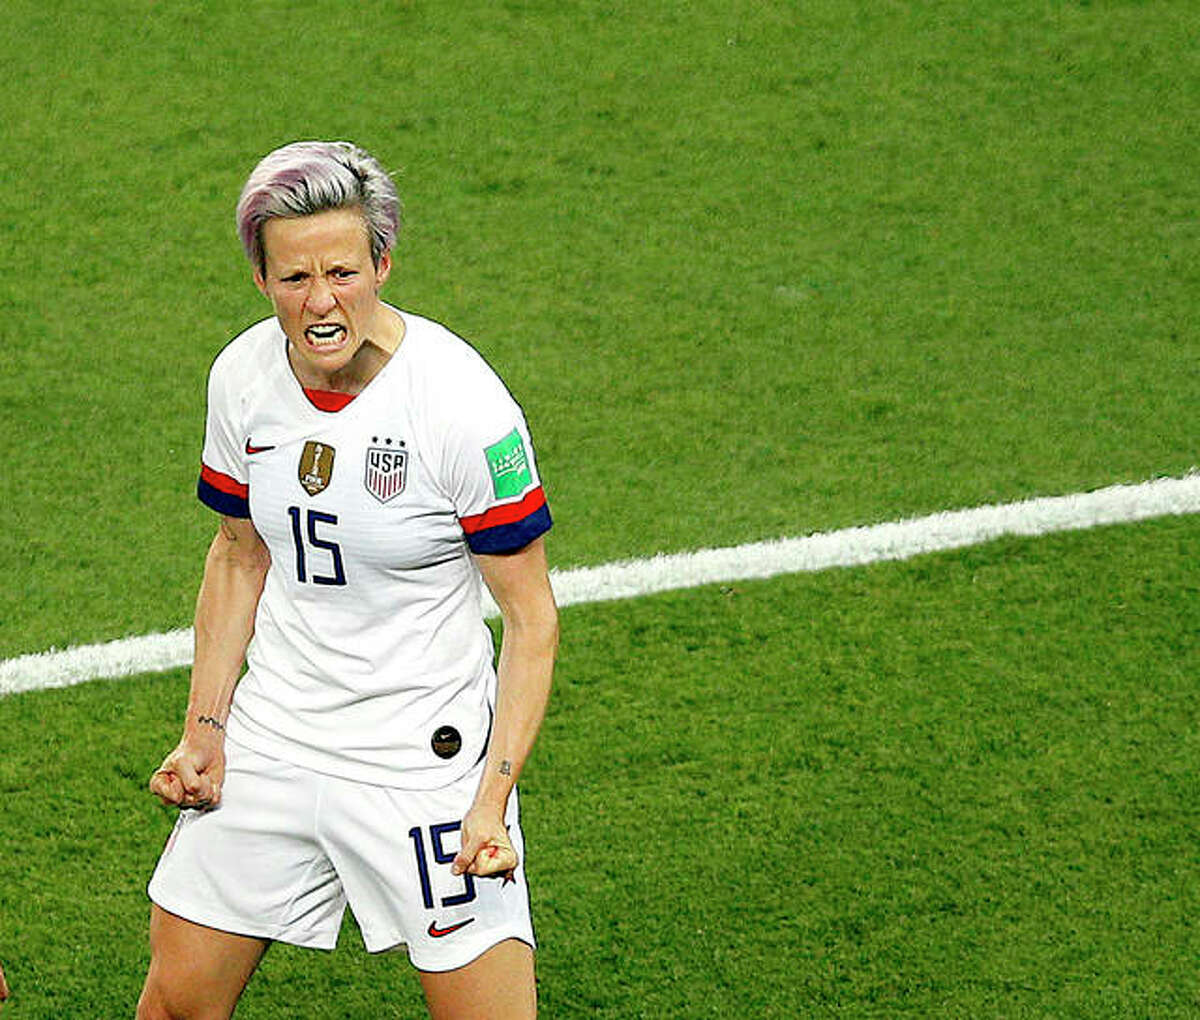 Megan Rapinoe of the U.S. celebrates after scoring her team's second goal against France in Friday's Women's World Cup quarterfinal match in Paris.